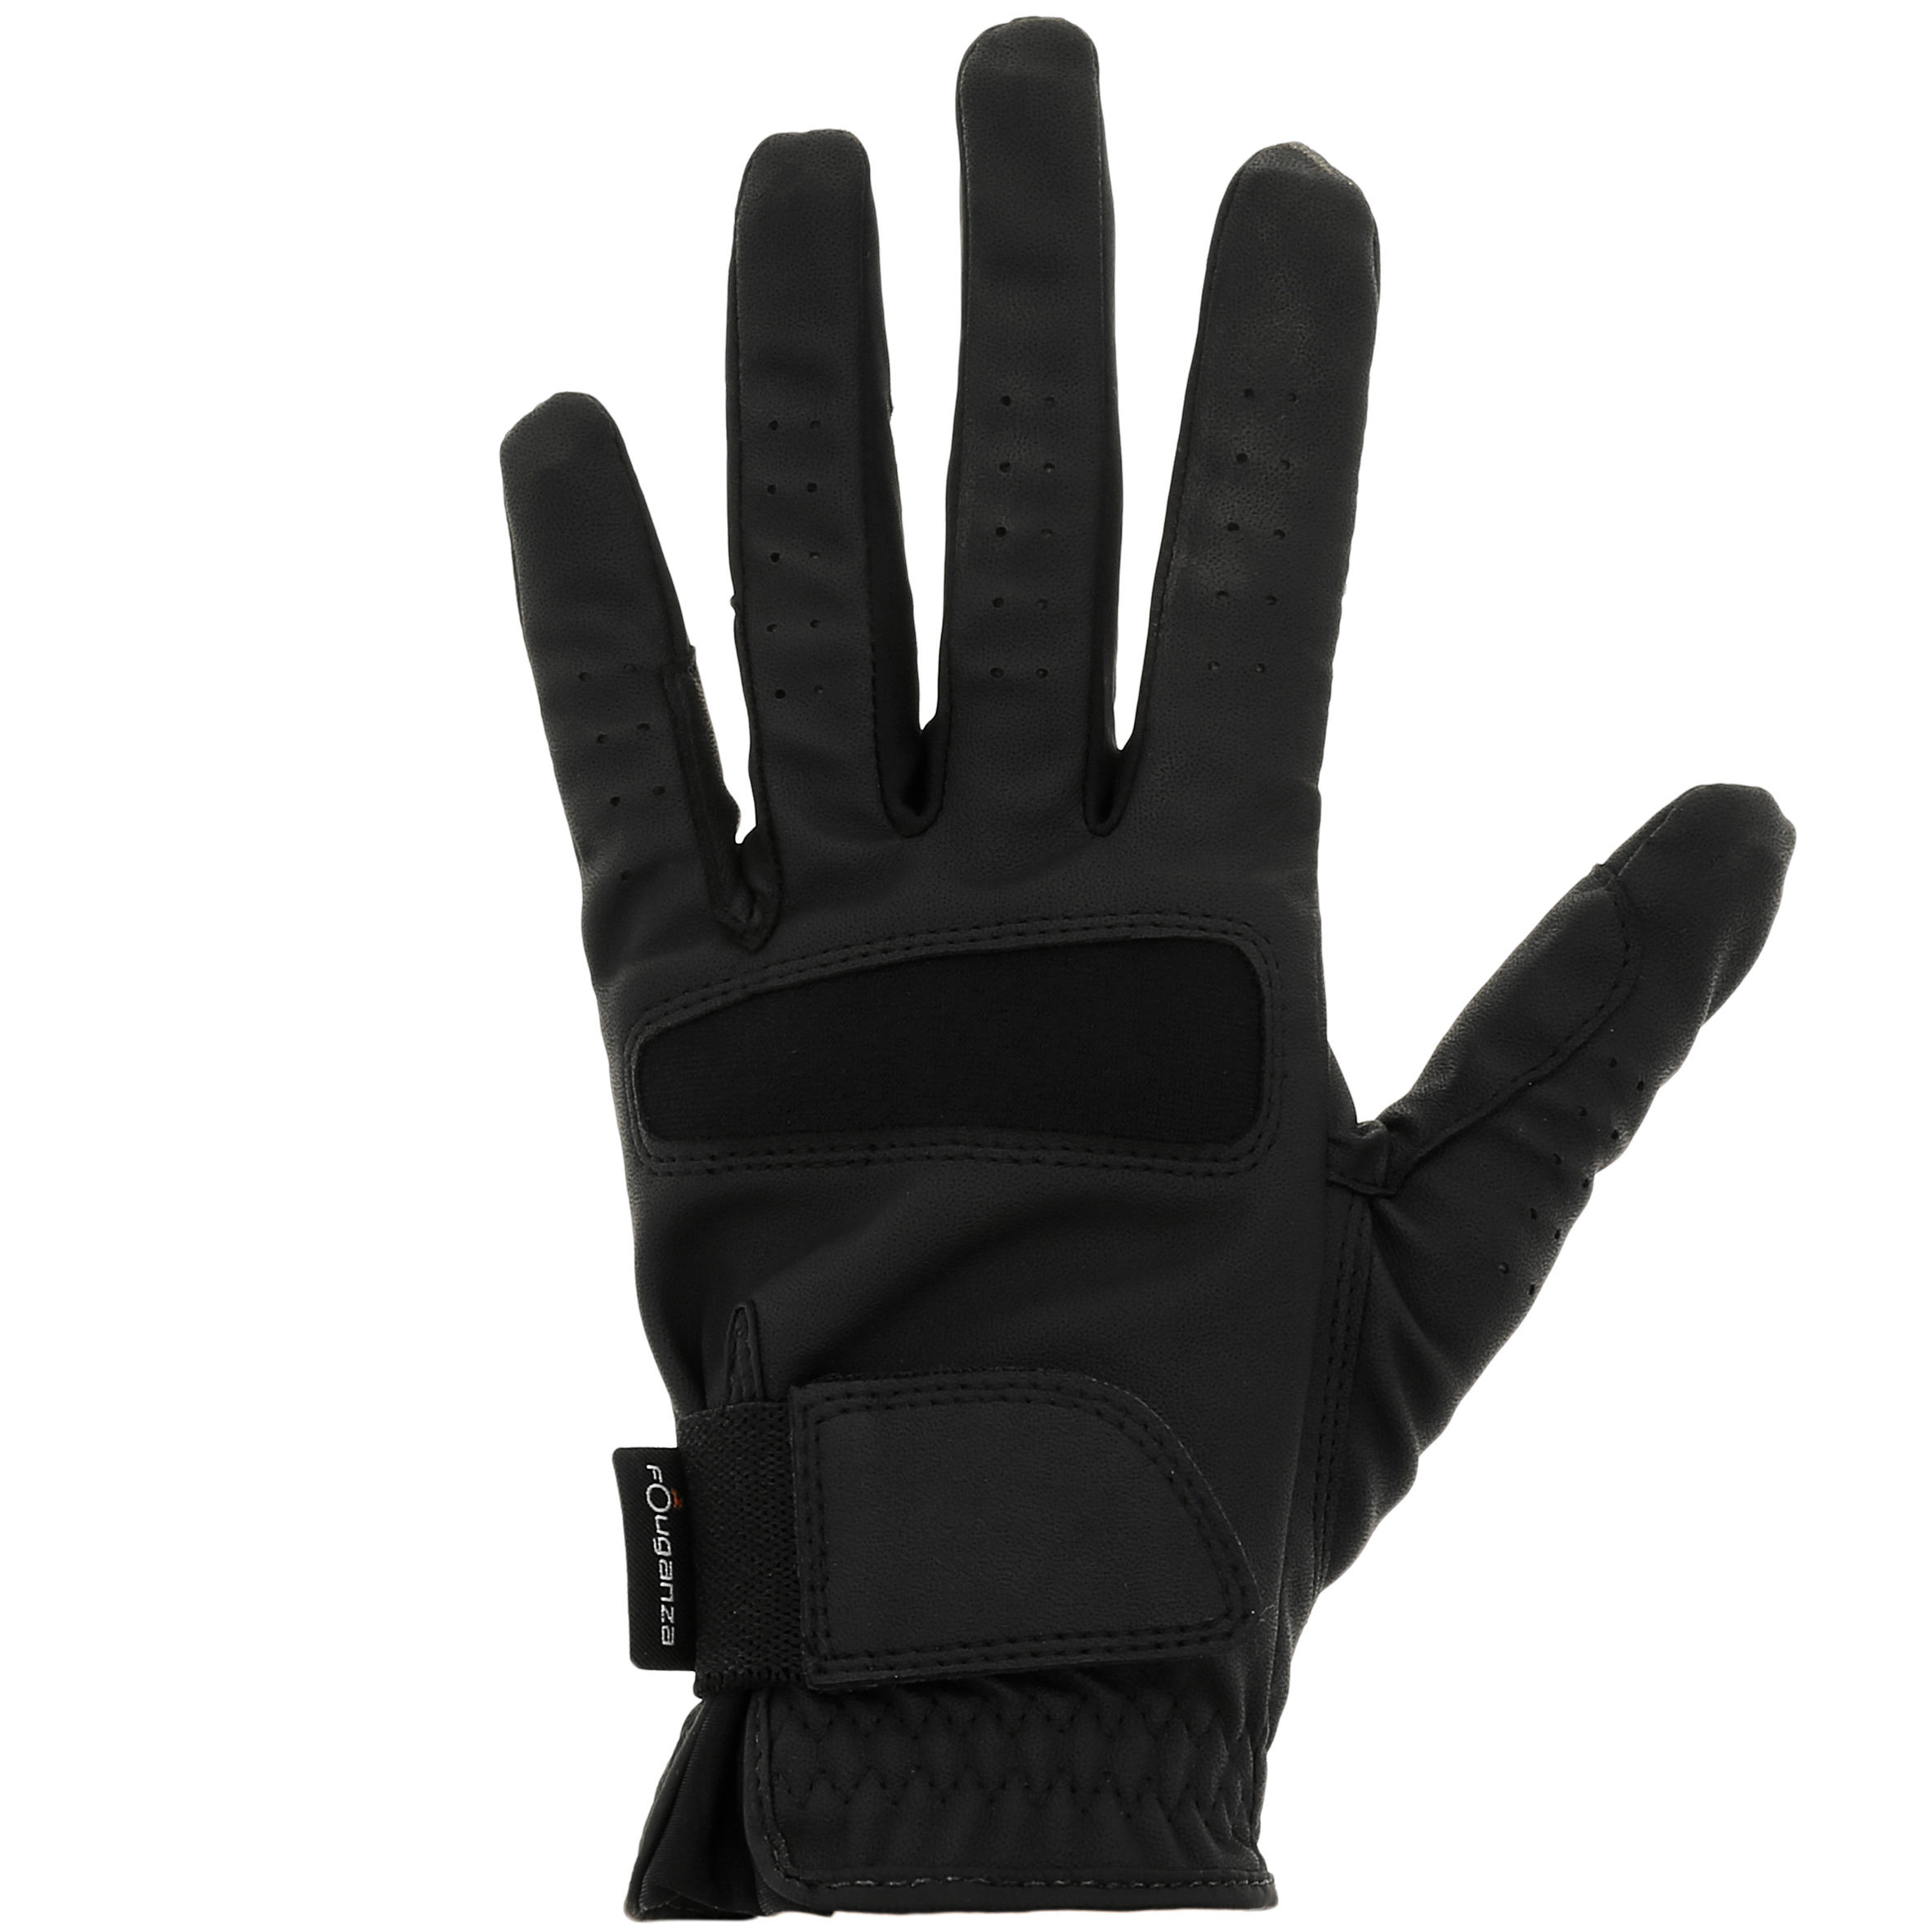 Grippy Adult and Children's Horse Riding Gloves - Hitam